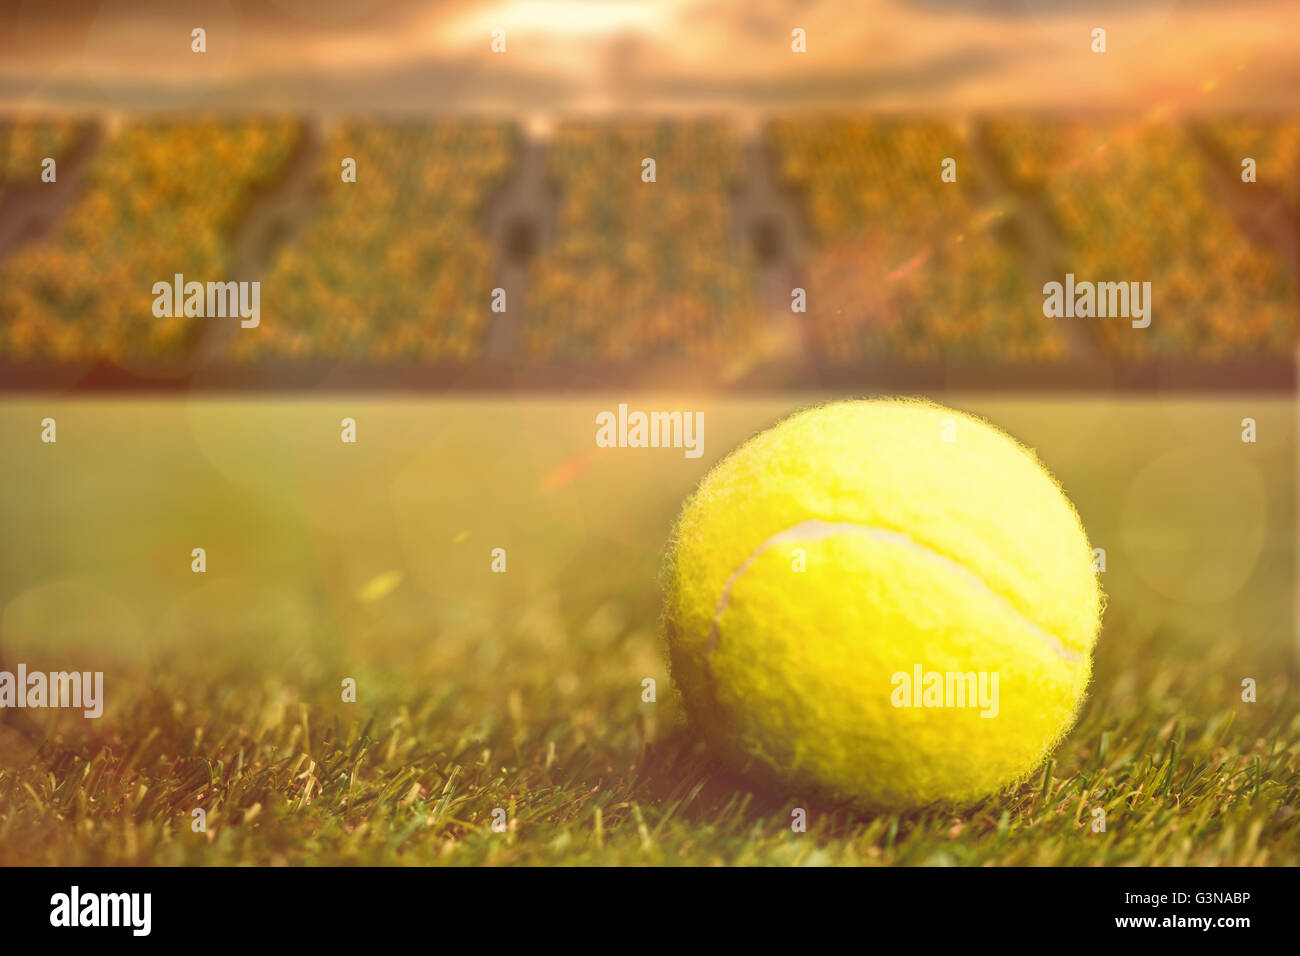 nahaufnahme von tennisball auf dem rasen stockfoto bild 105575338 alamy. Black Bedroom Furniture Sets. Home Design Ideas